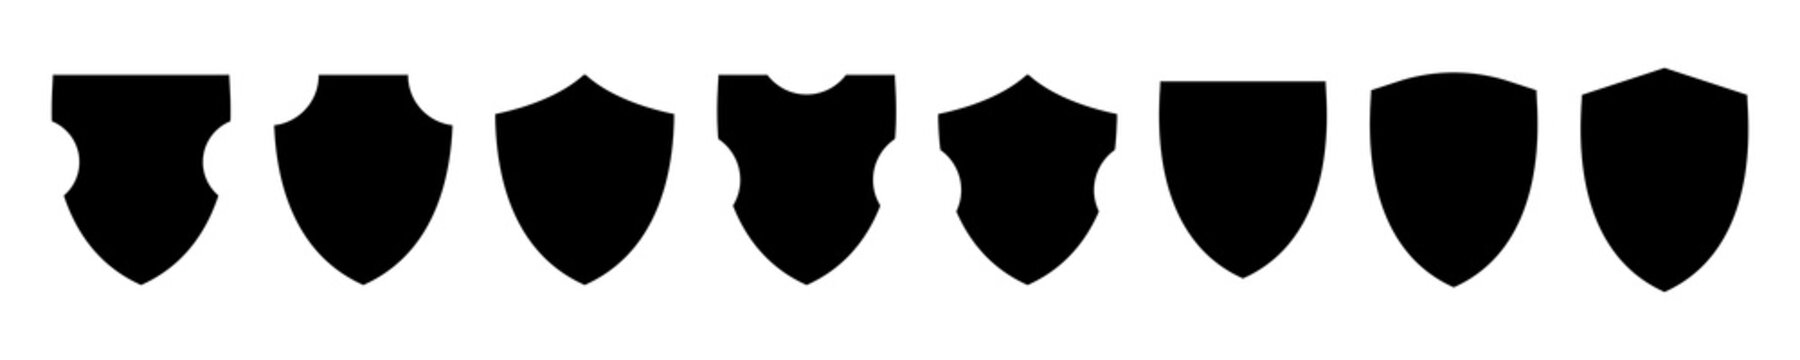 Different shields shapes. Shields icon set. Protect badge. Black security icon. Protection symbol. Security logo.Vector graphic.